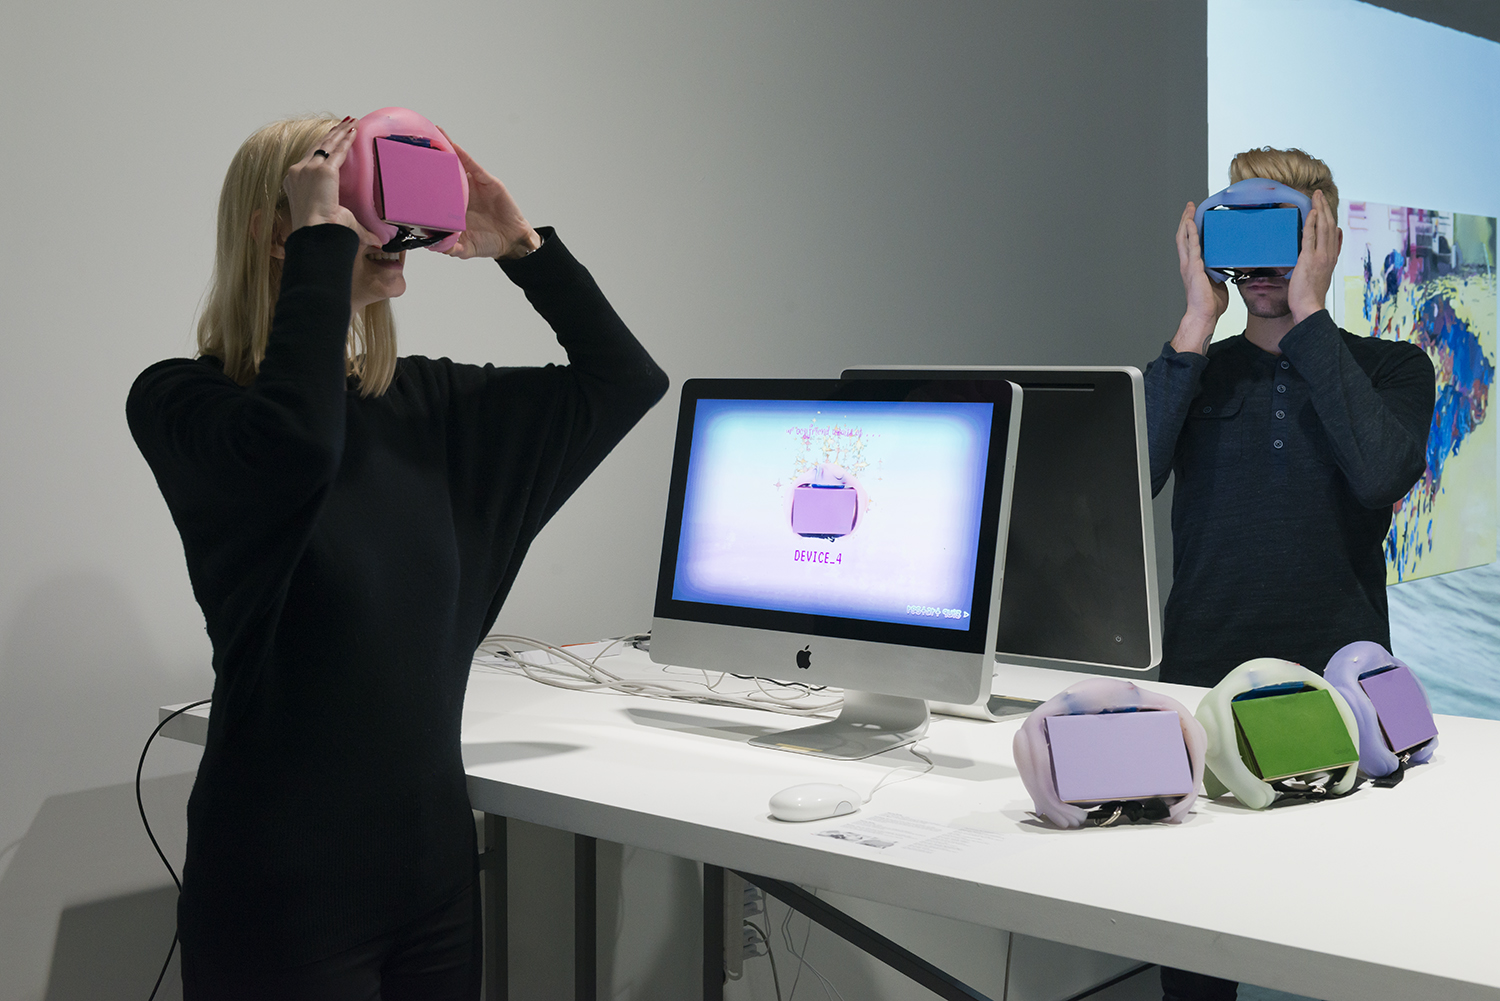 Exhibition view THE UNFRAMED WORLD at HeK Basel, artwork: Martha Hipley, Ur Cardboard Pet, 2016 (Installation view, online test and VR experience for Google Cardboard) / Photo by Franz Wamhof